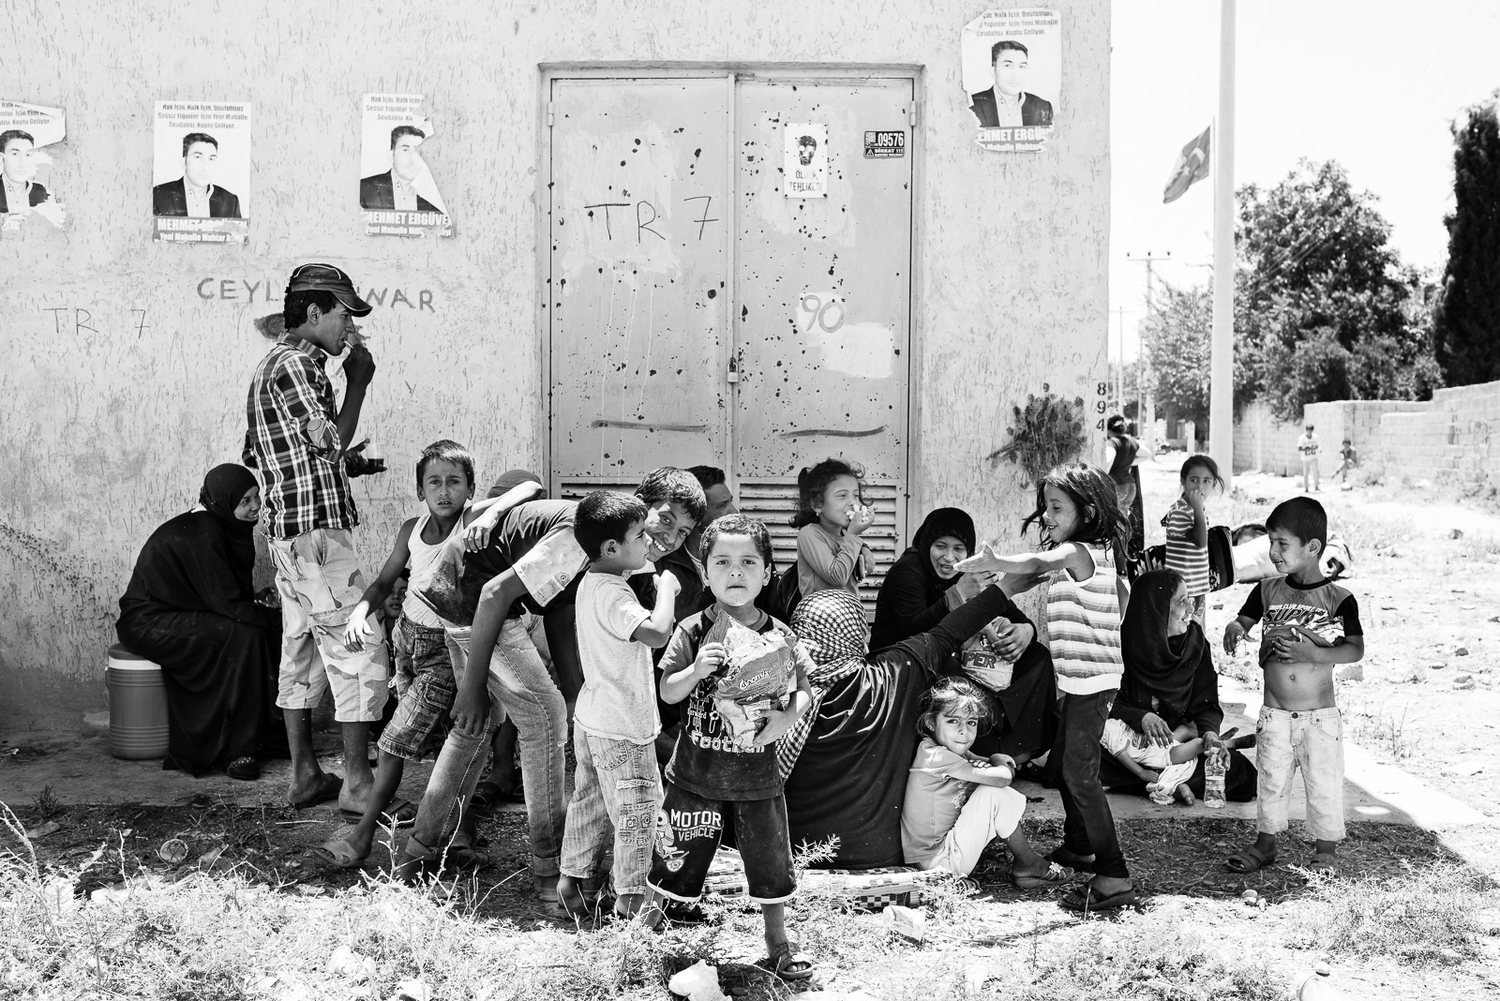 syrian refugees giulio magnifico